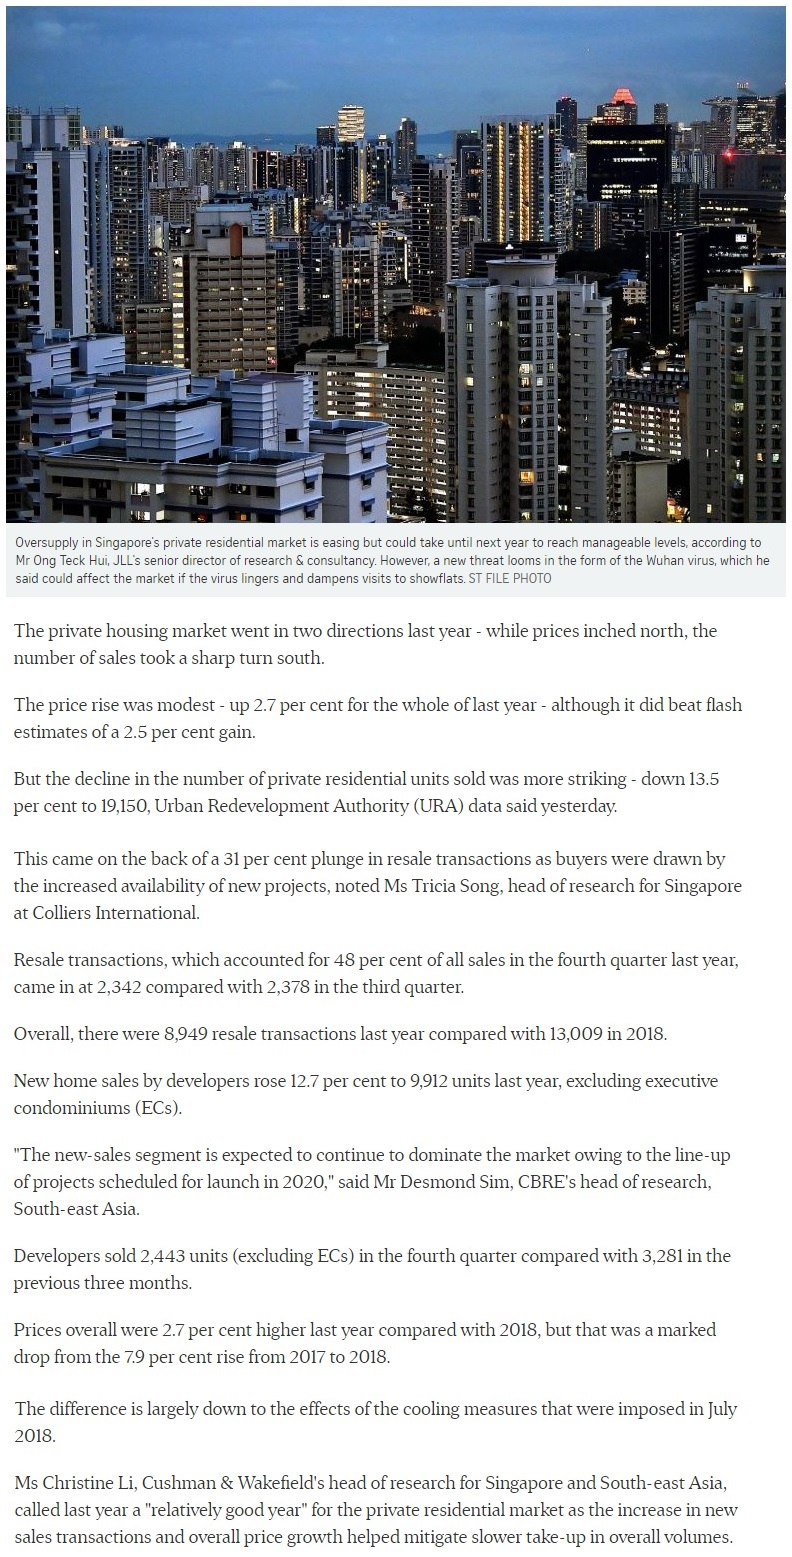 The Watergardens - Singapore private home prices inch up 2.7% for 2019 Part 1